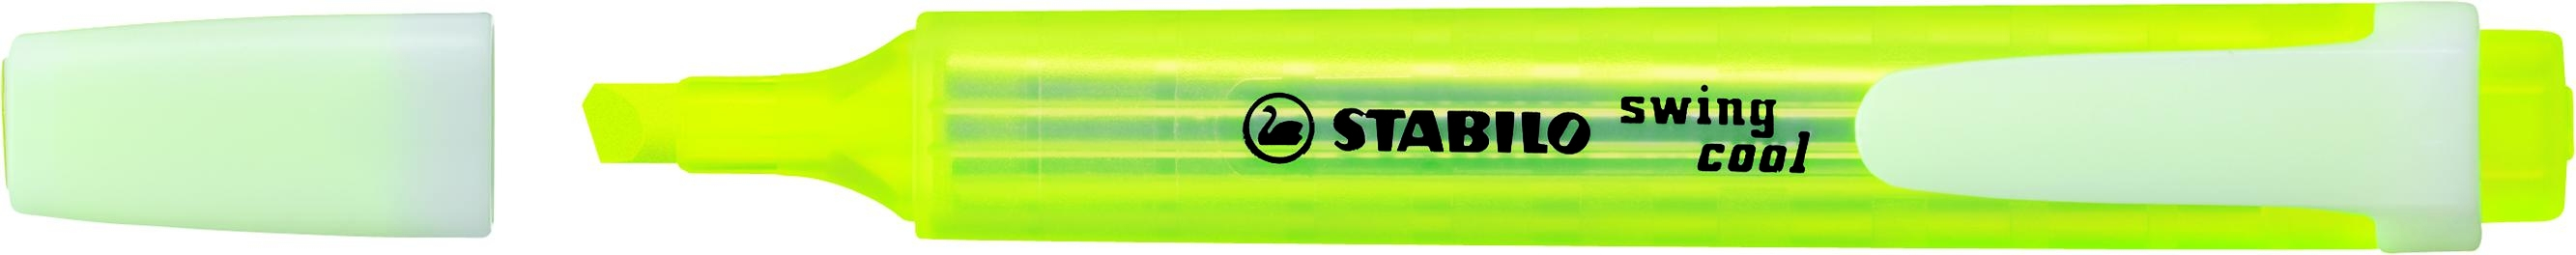 275/24 stabilo Stabilo Swing Cool Highlighter Yellow 275/24 - (pk10) - AD01